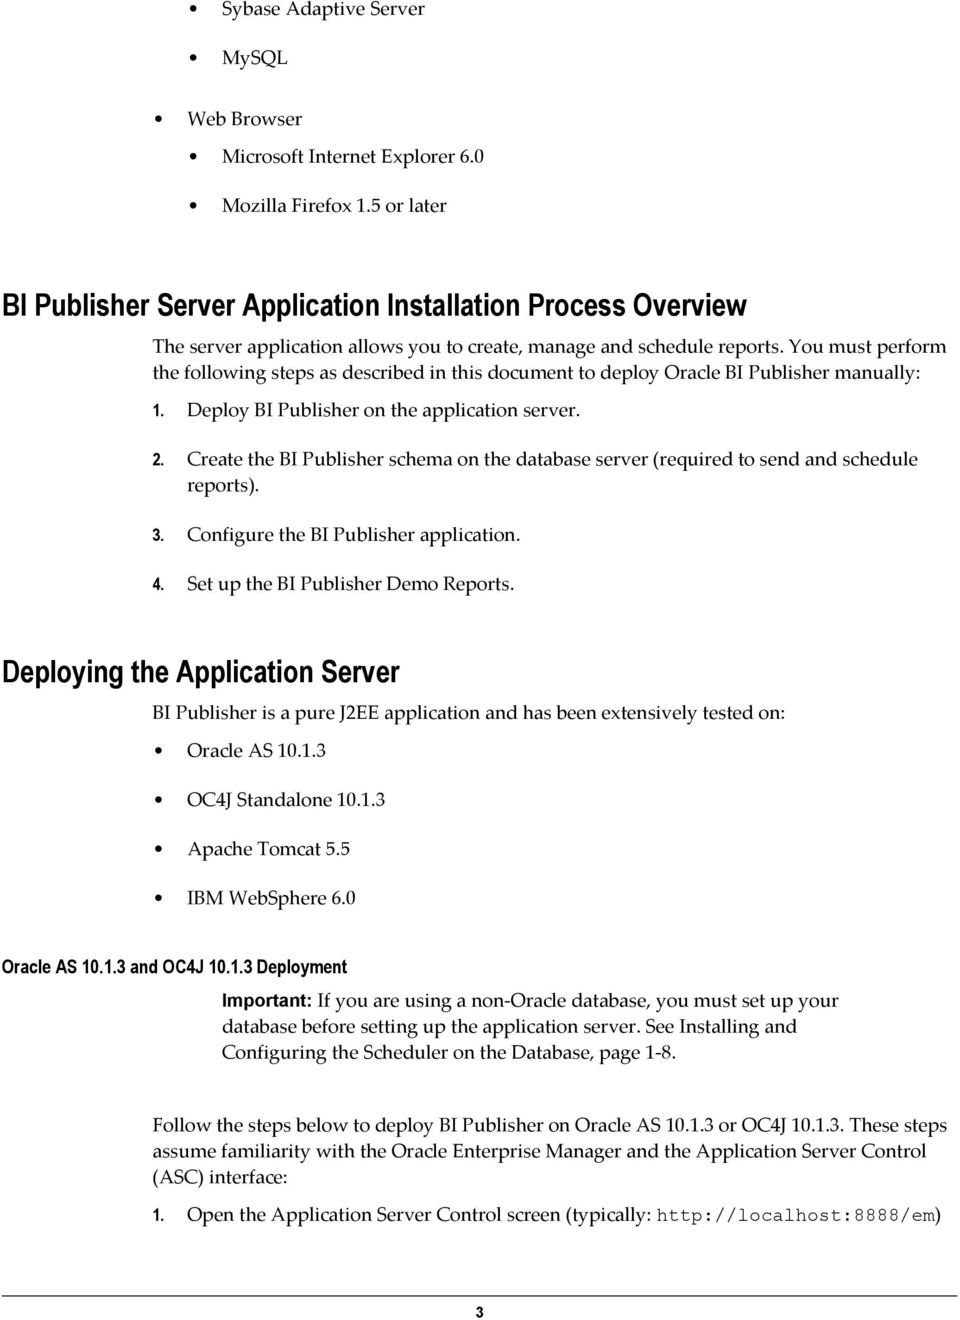 You must perform the following steps as described in this document to deploy Oracle BI Publisher manually: 1. Deploy BI Publisher on the application server. 2.